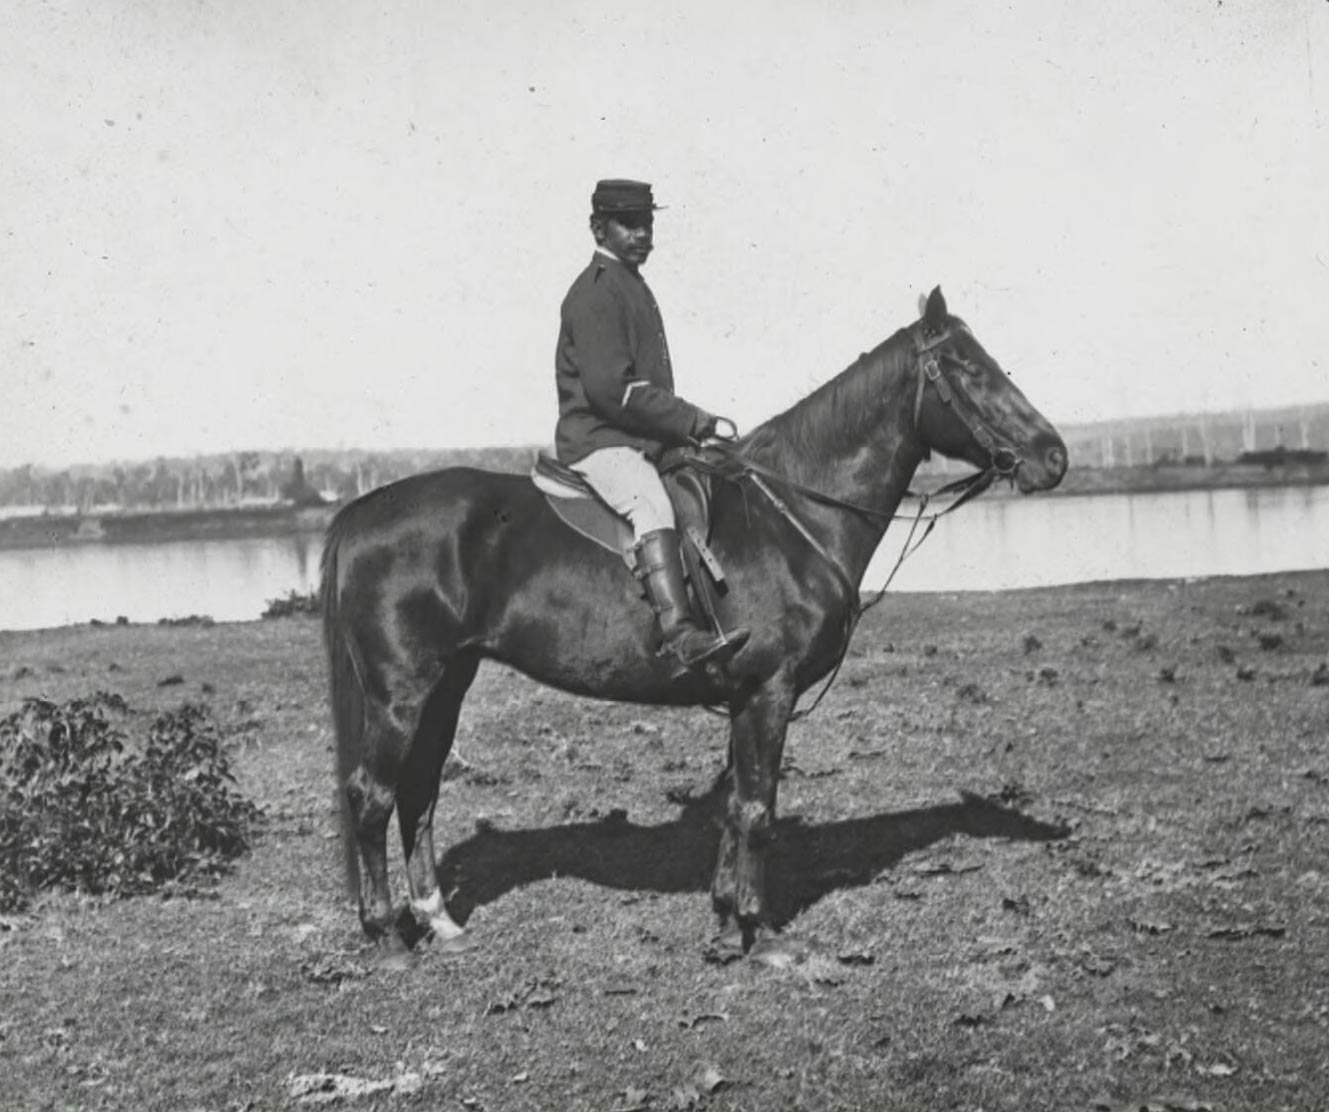 Black and white photograph of a policeman on horseback.